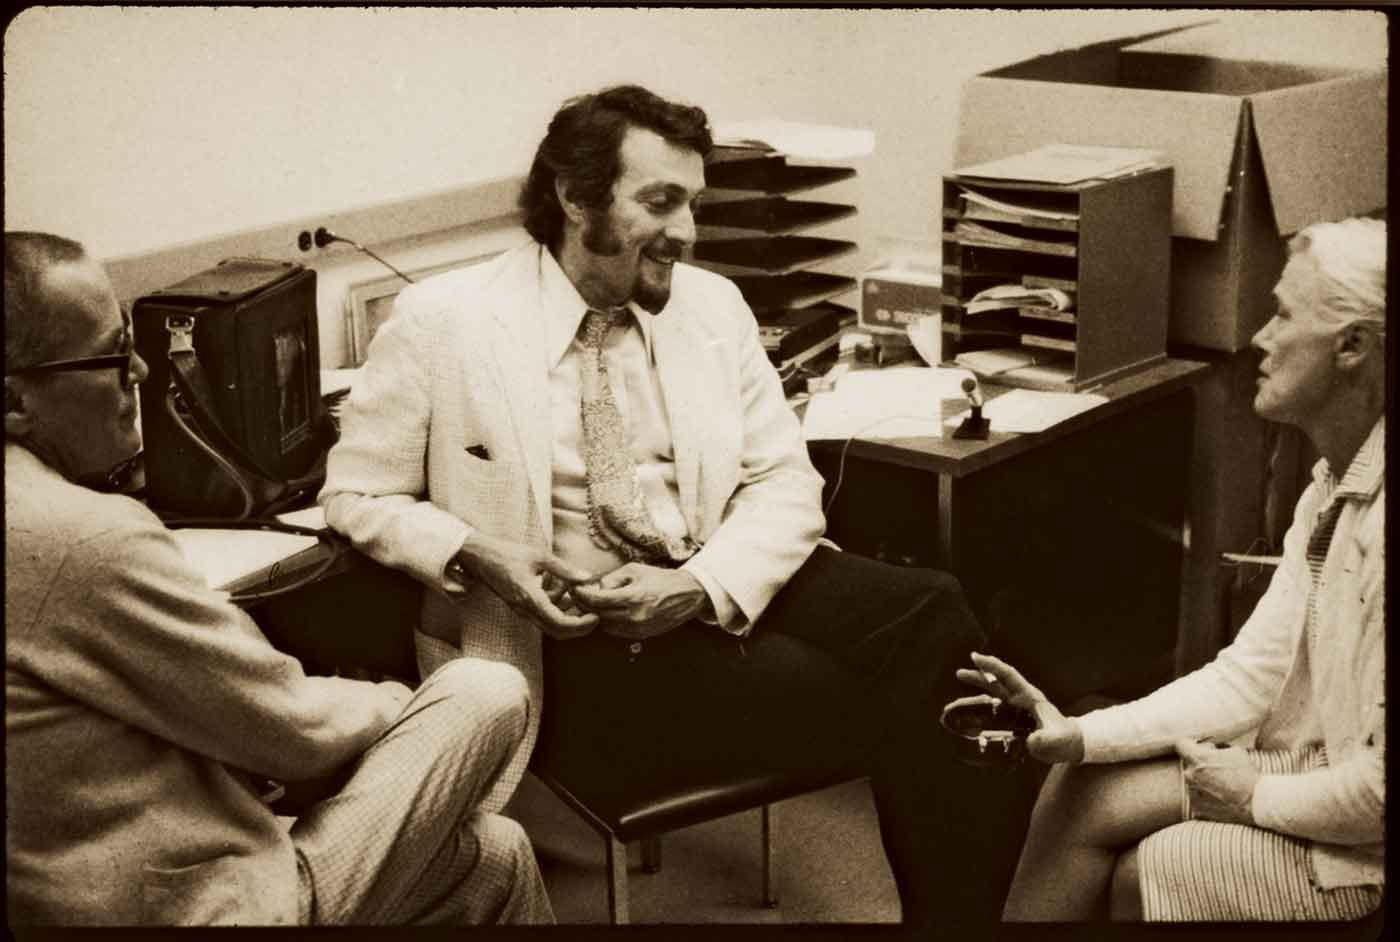 stamford prison experiment For decades, the story of the famous stanford prison experiment has gone like this: stanford professor philip zimbardo assigned paid volunteers to be either inmates or guards in a simulated prison .